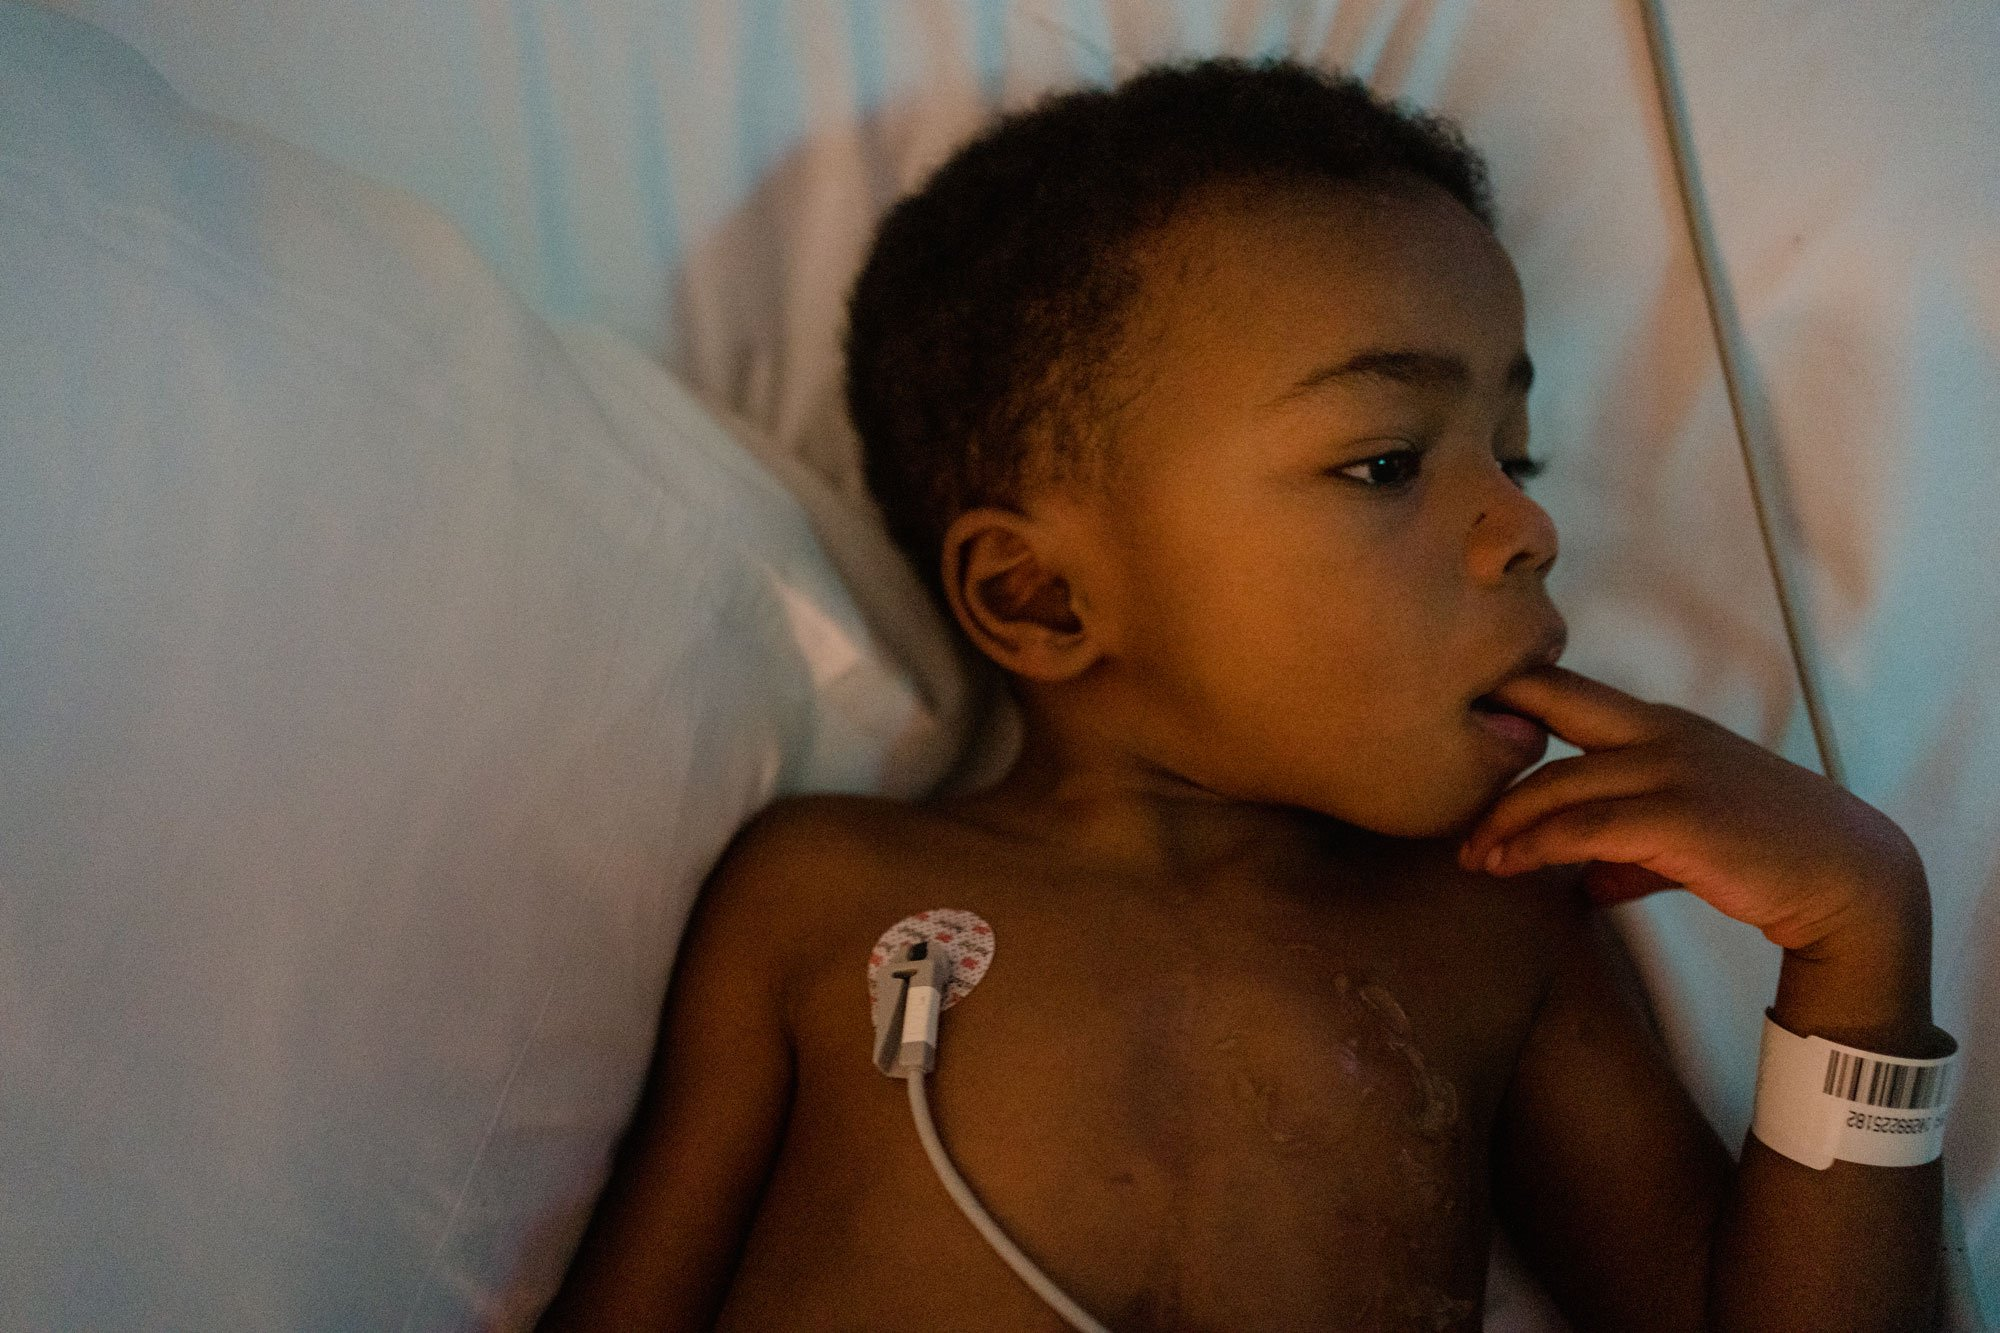 boy watching his heart on monitor